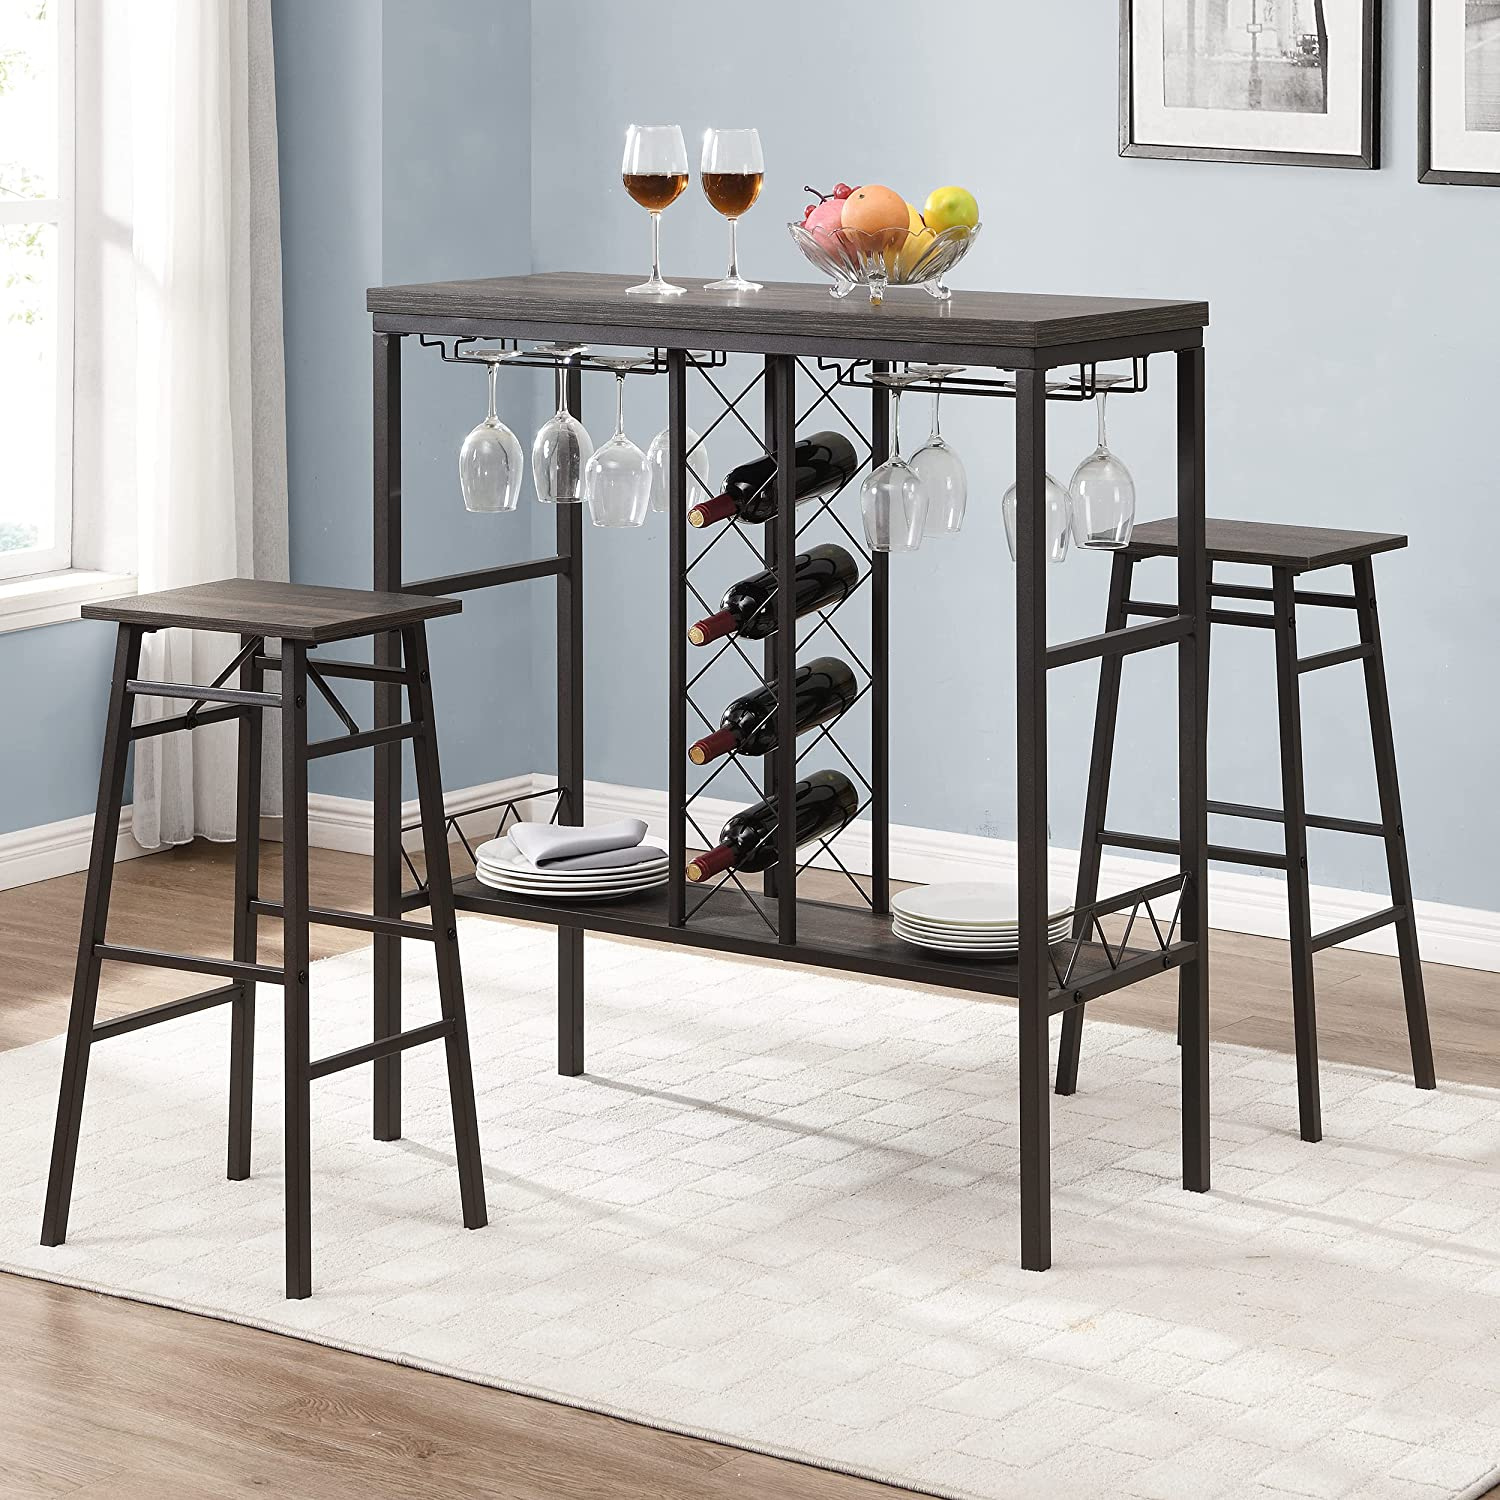 HOMYSHOPY Bar Table Set with 9 Chairs, Dining Table Set with 9 Stools, 9  Piece Kitchen Table with Wine Rack and Glass Holder, Industrial Pub Table  Set ...